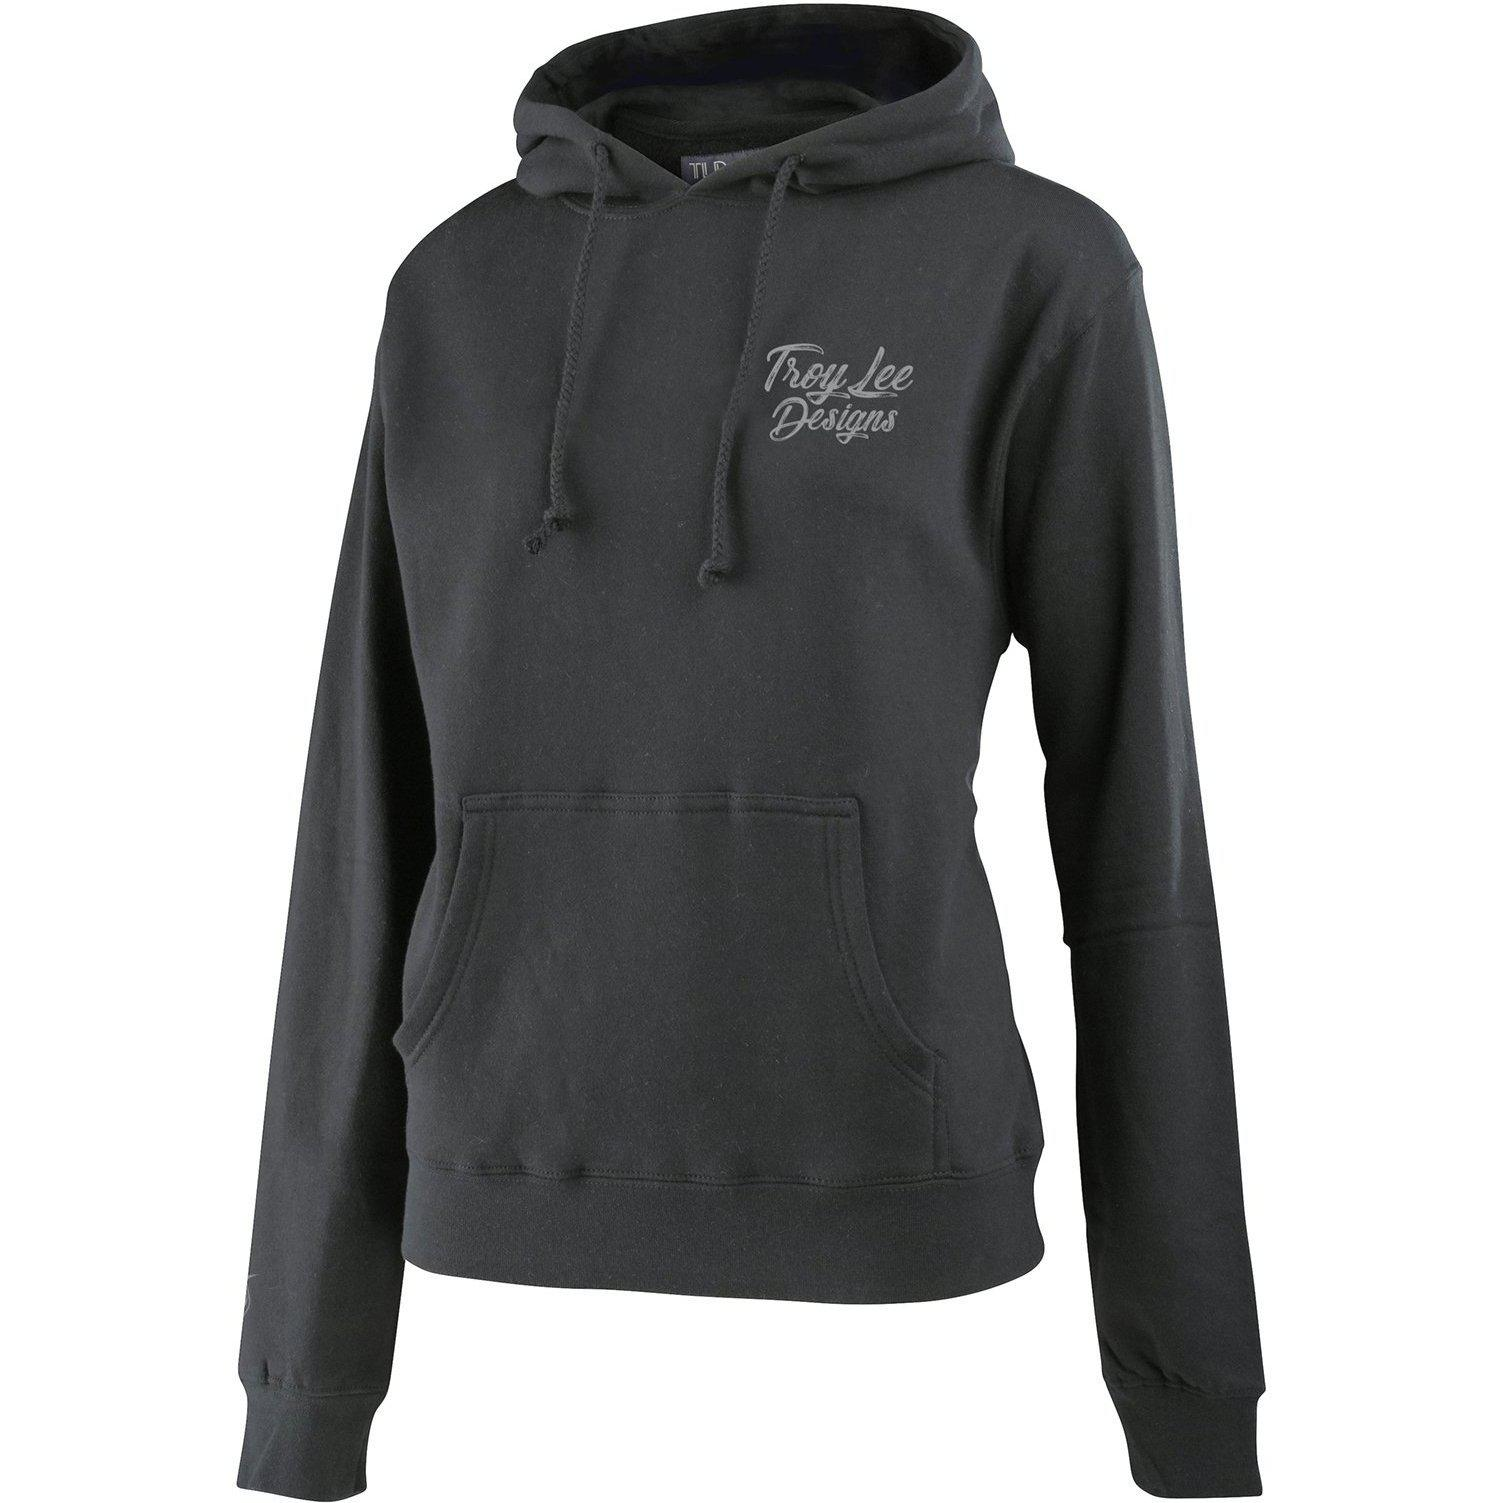 Troy Lee Designs-Troy Lee Designs Women's Widow Maker Pullover-Gunmetal Heather-S-TLD763821002-saddleback-elite-performance-cycling